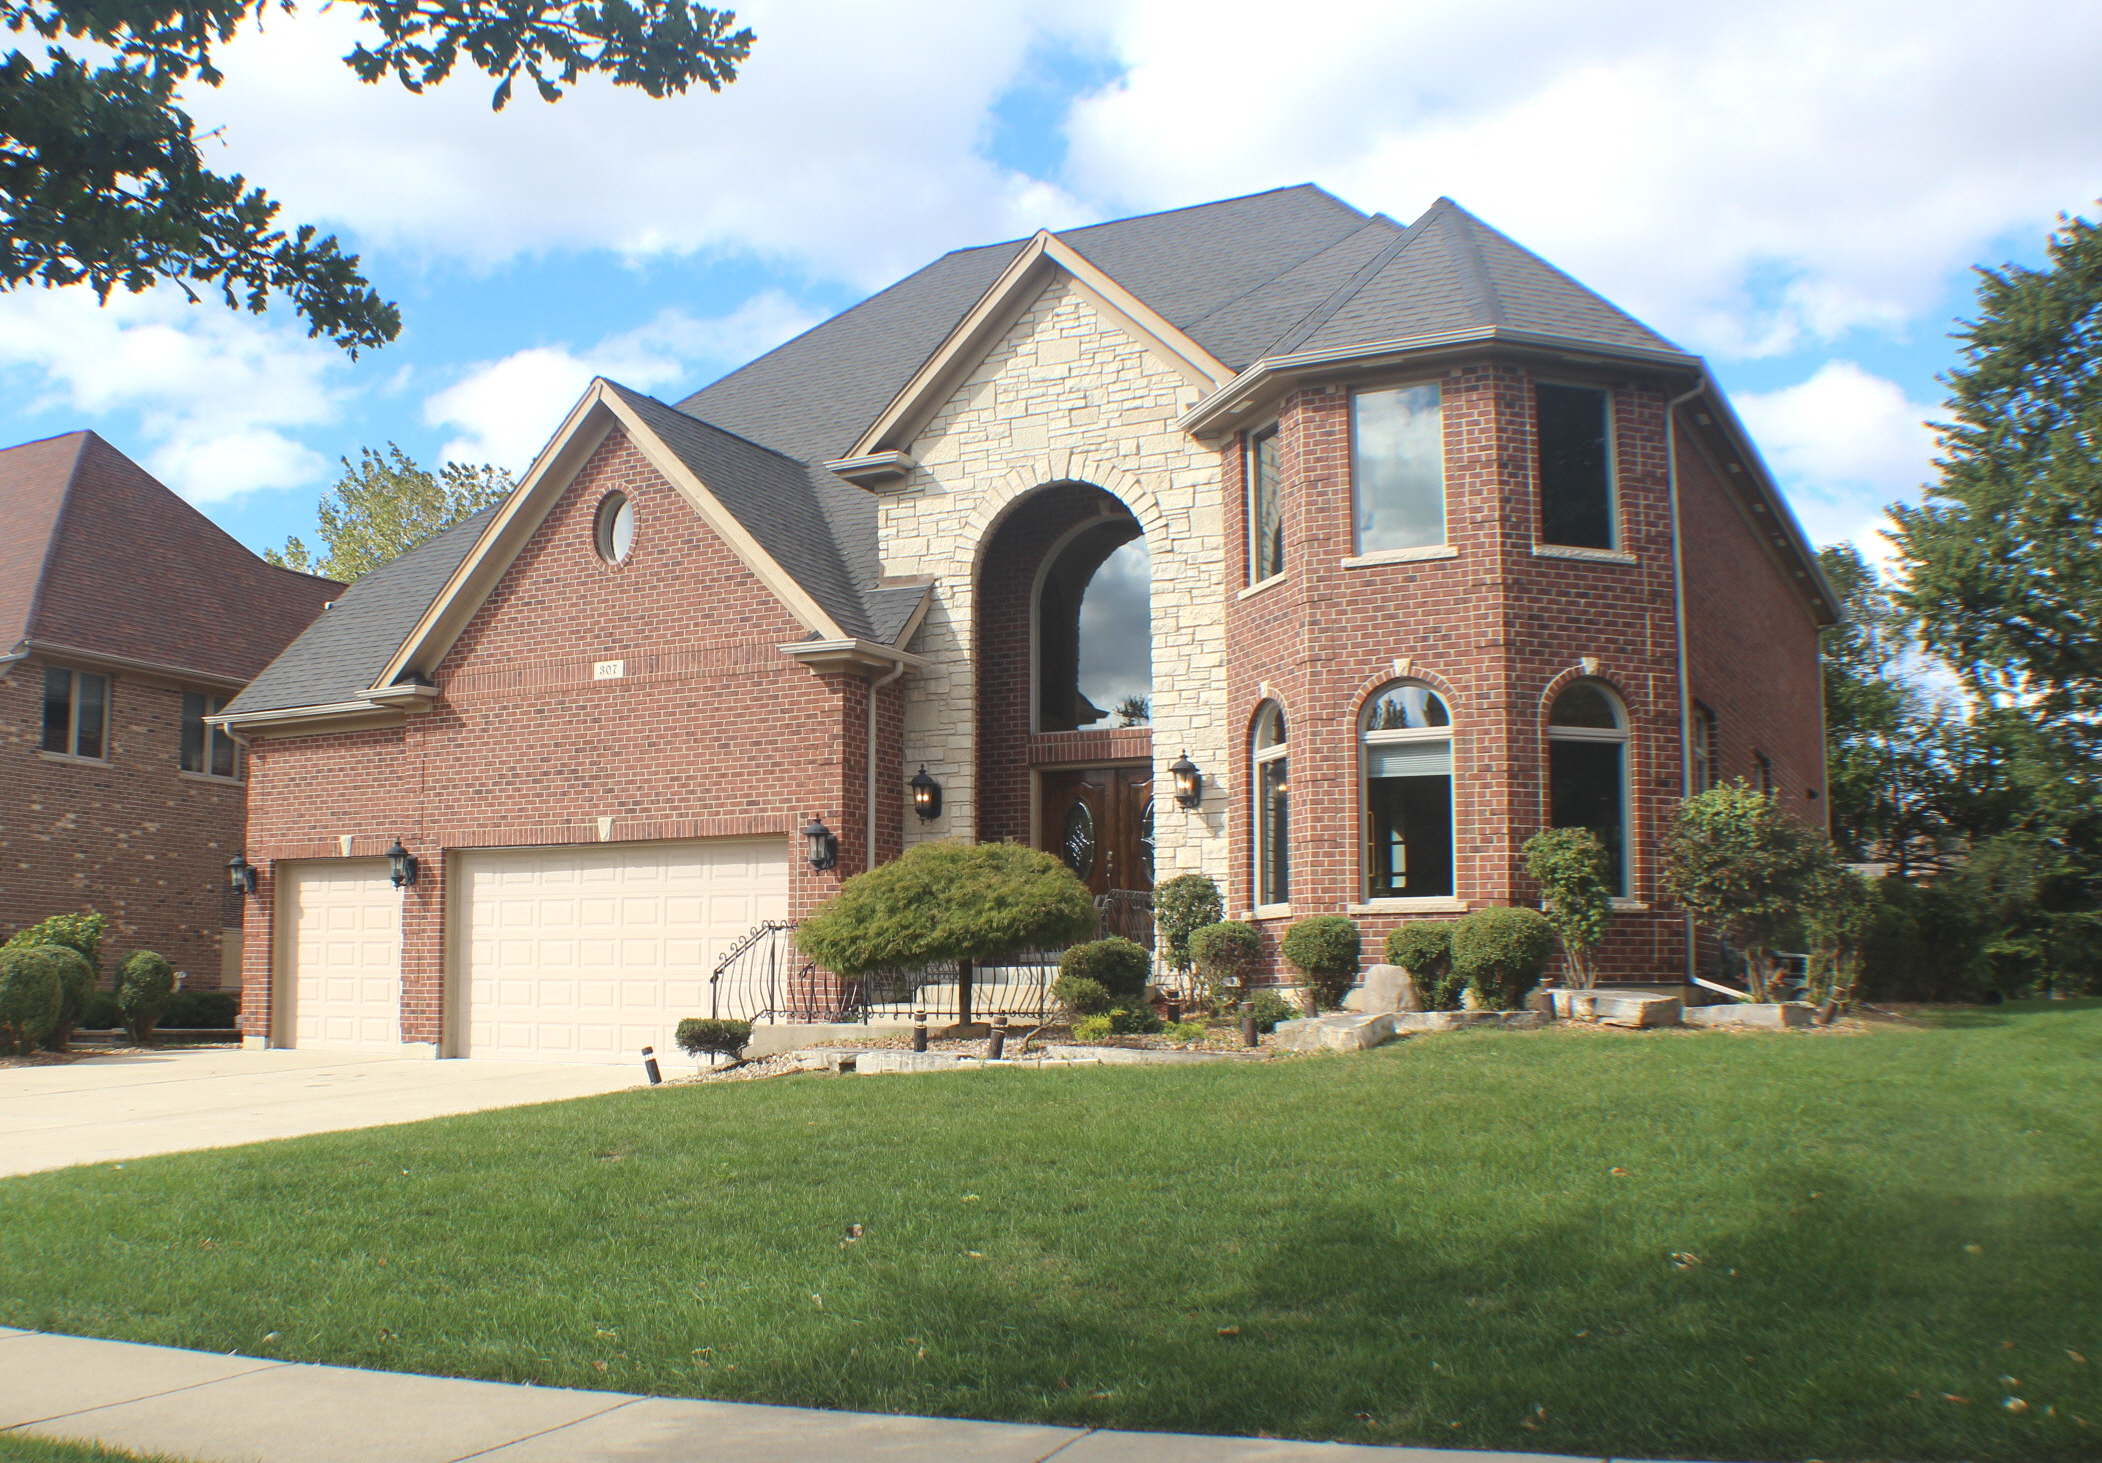 307 Juliana Ln, Bloomingdale, Illinois 60108